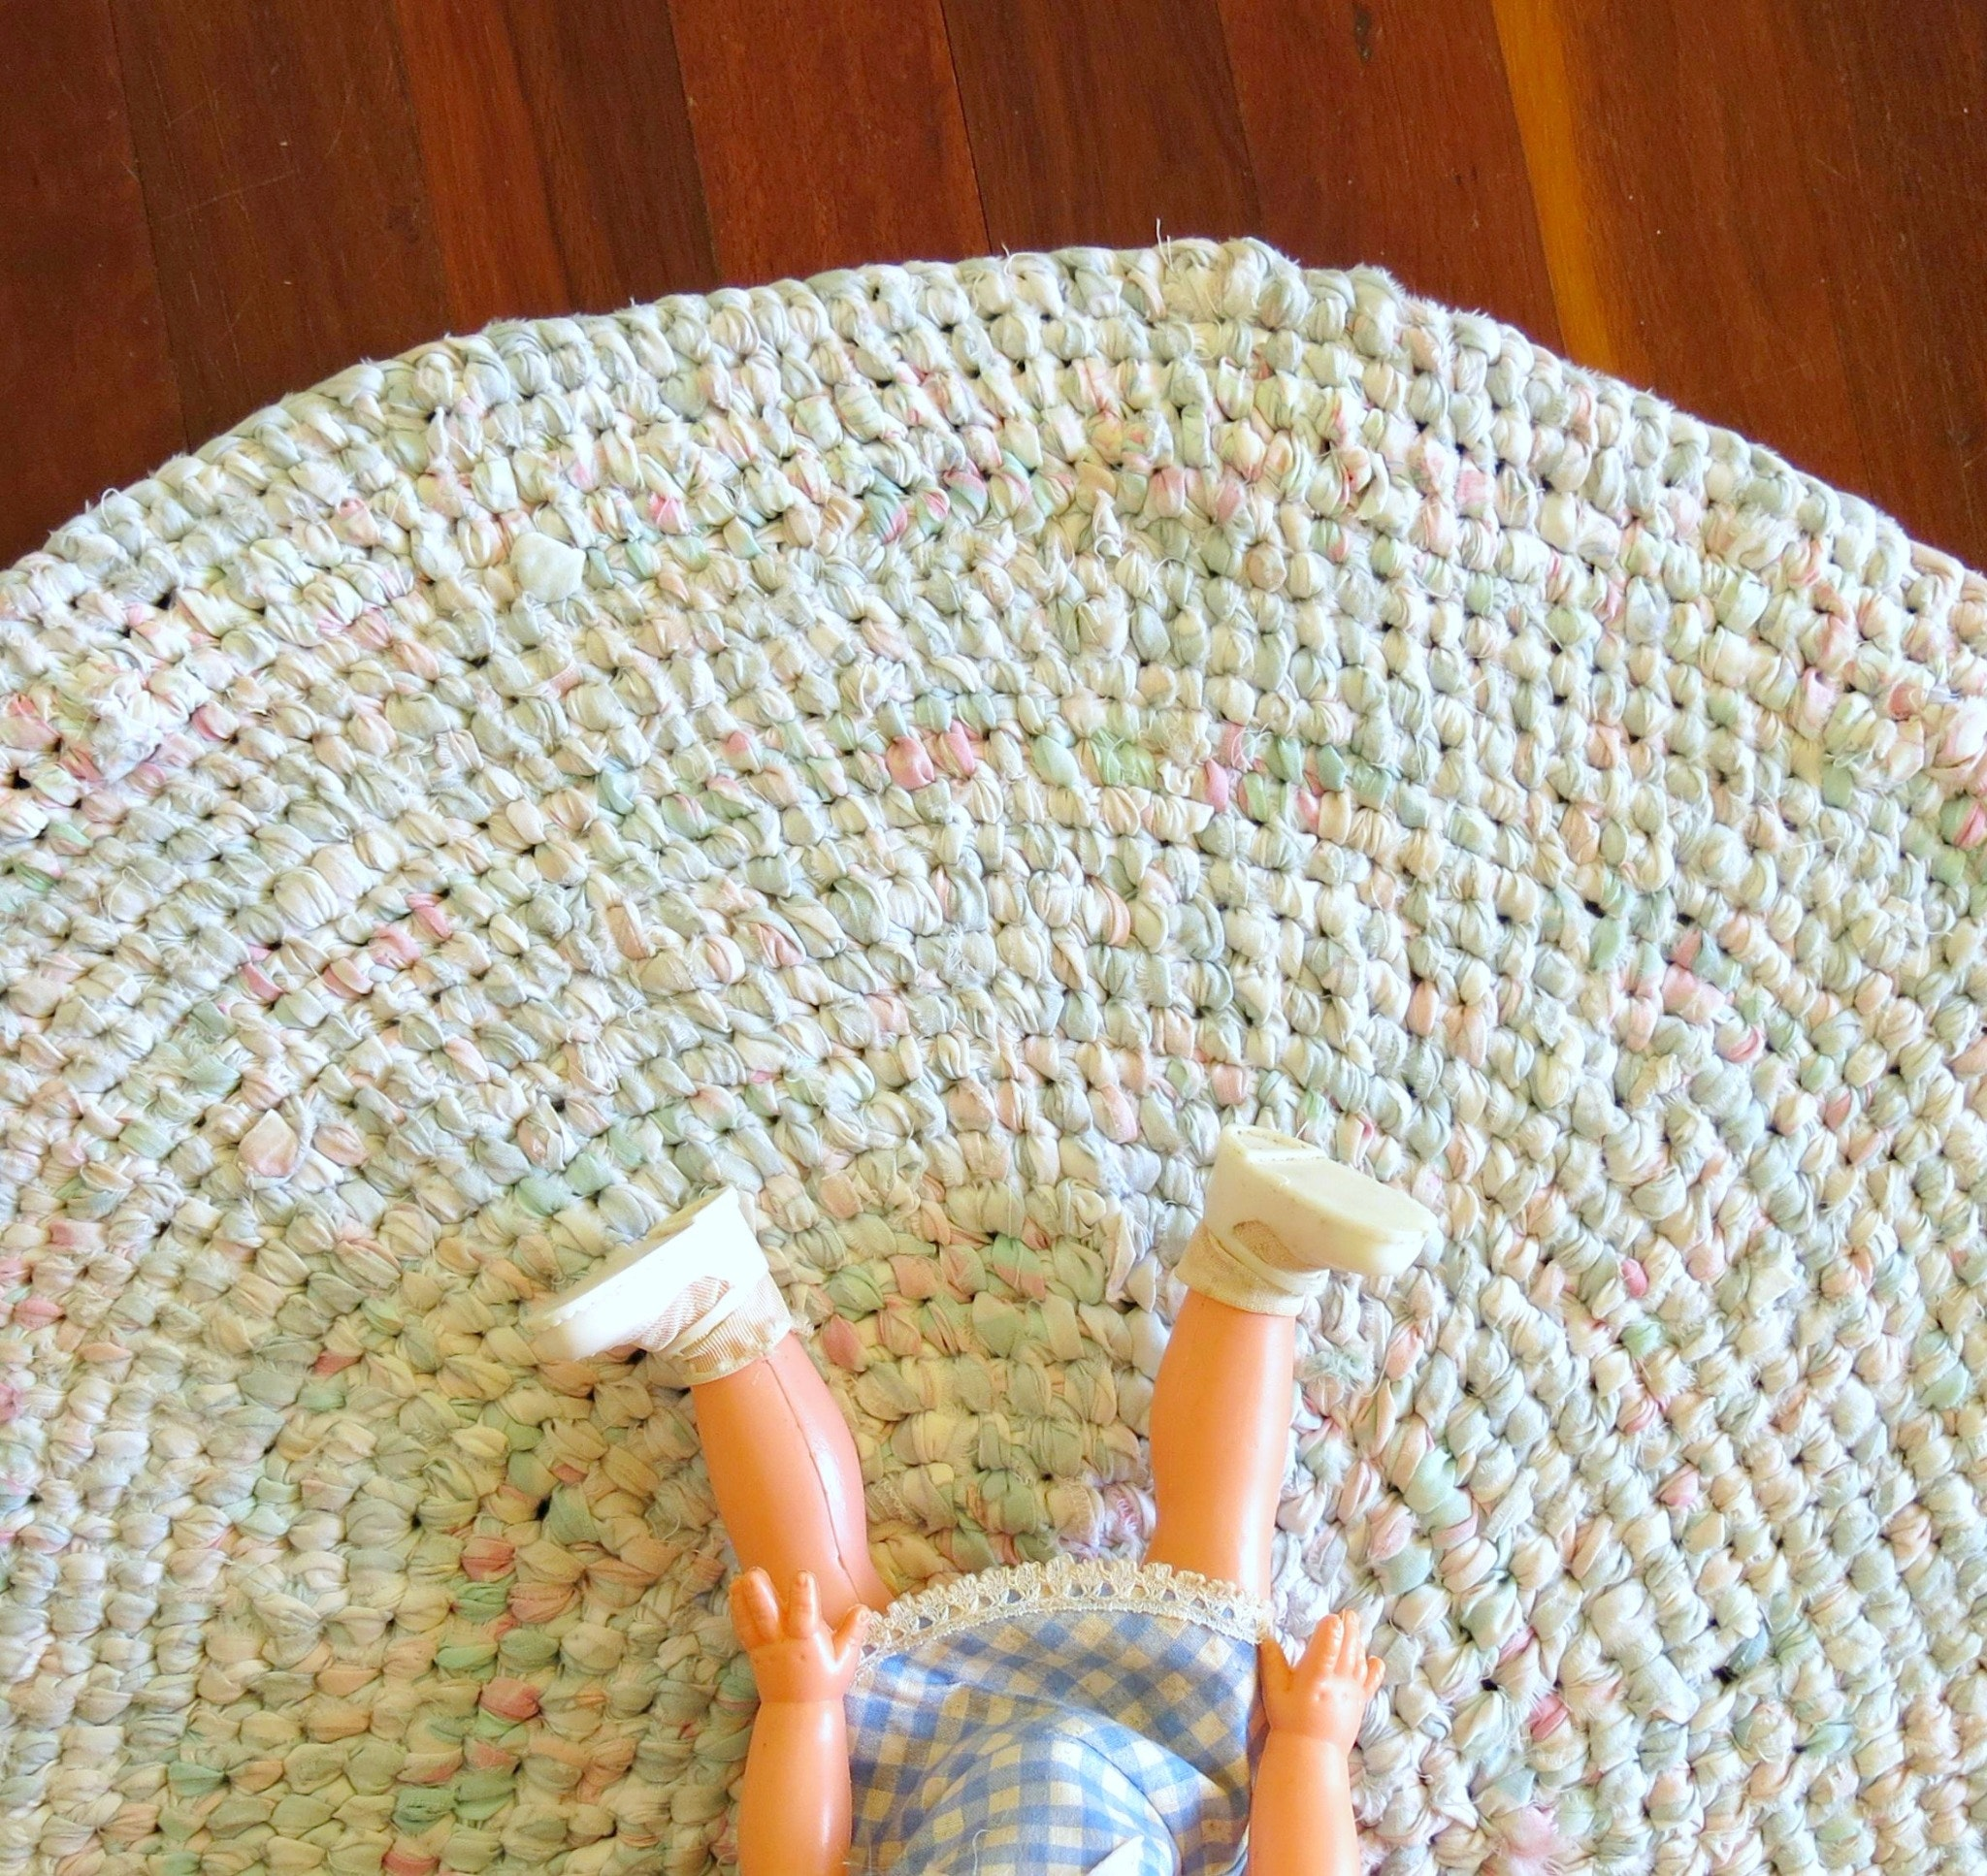 Rag Rugs With The Sewloist